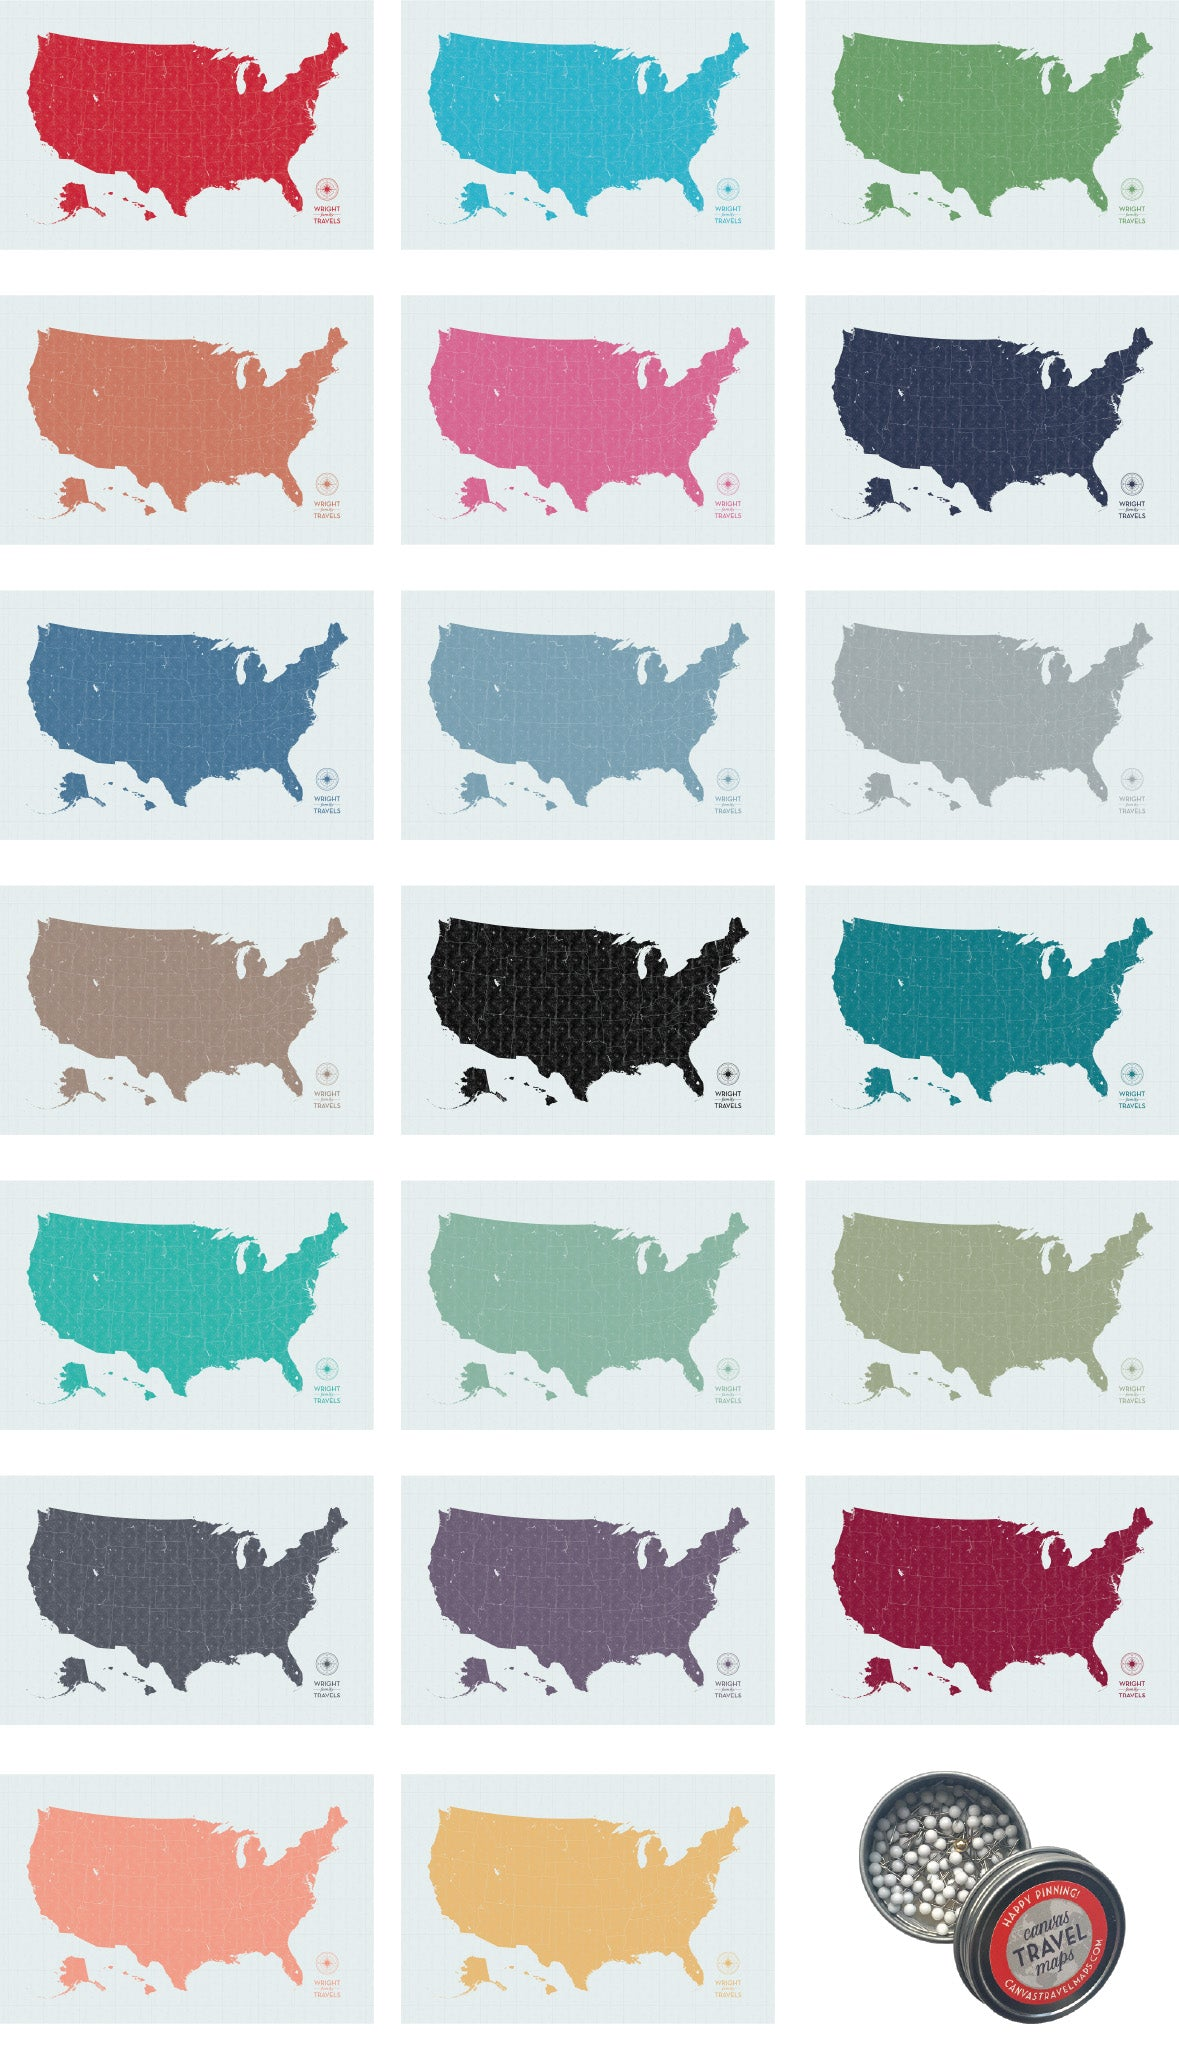 Personalized Push Pin Maps of the USA